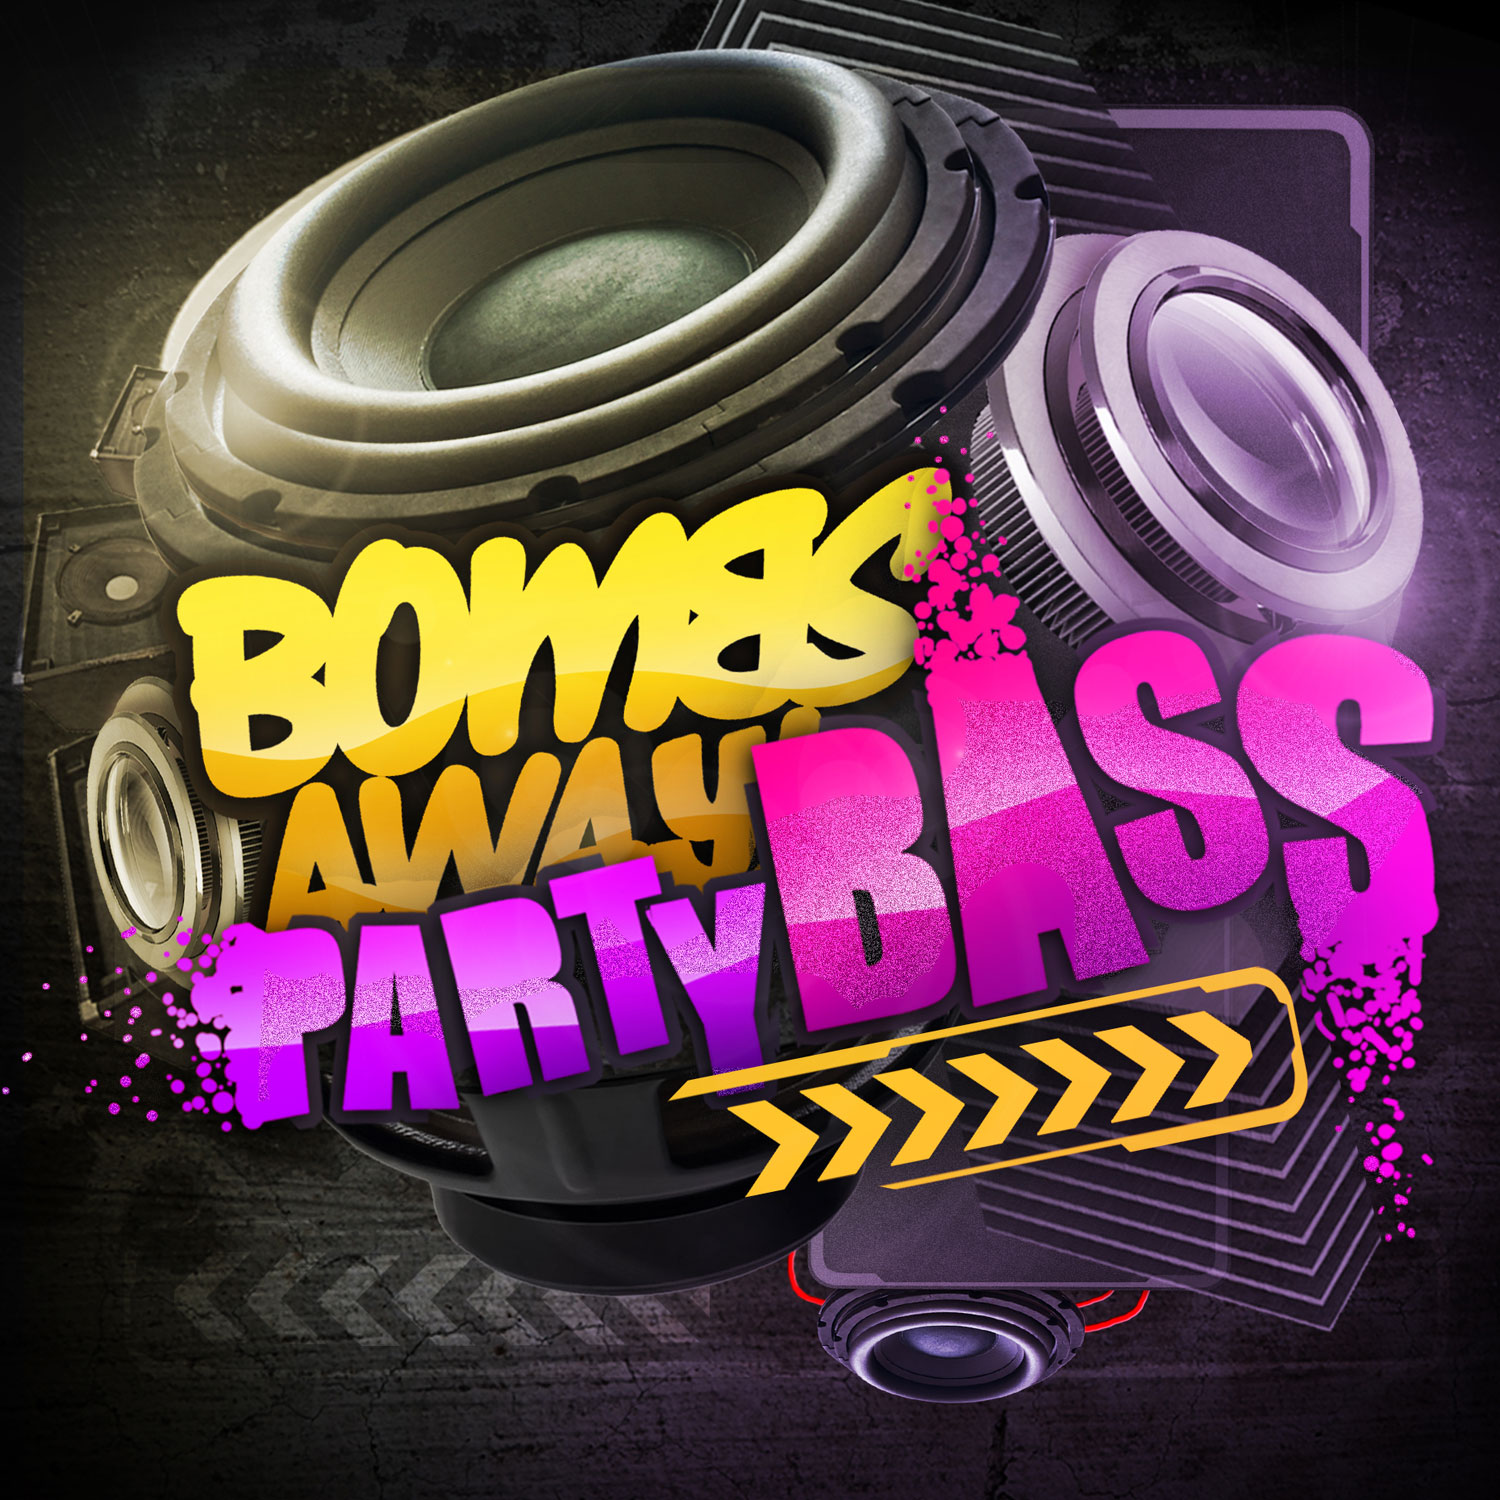 Bombs Away feat. The Twins – Party Bass (Video Edit)